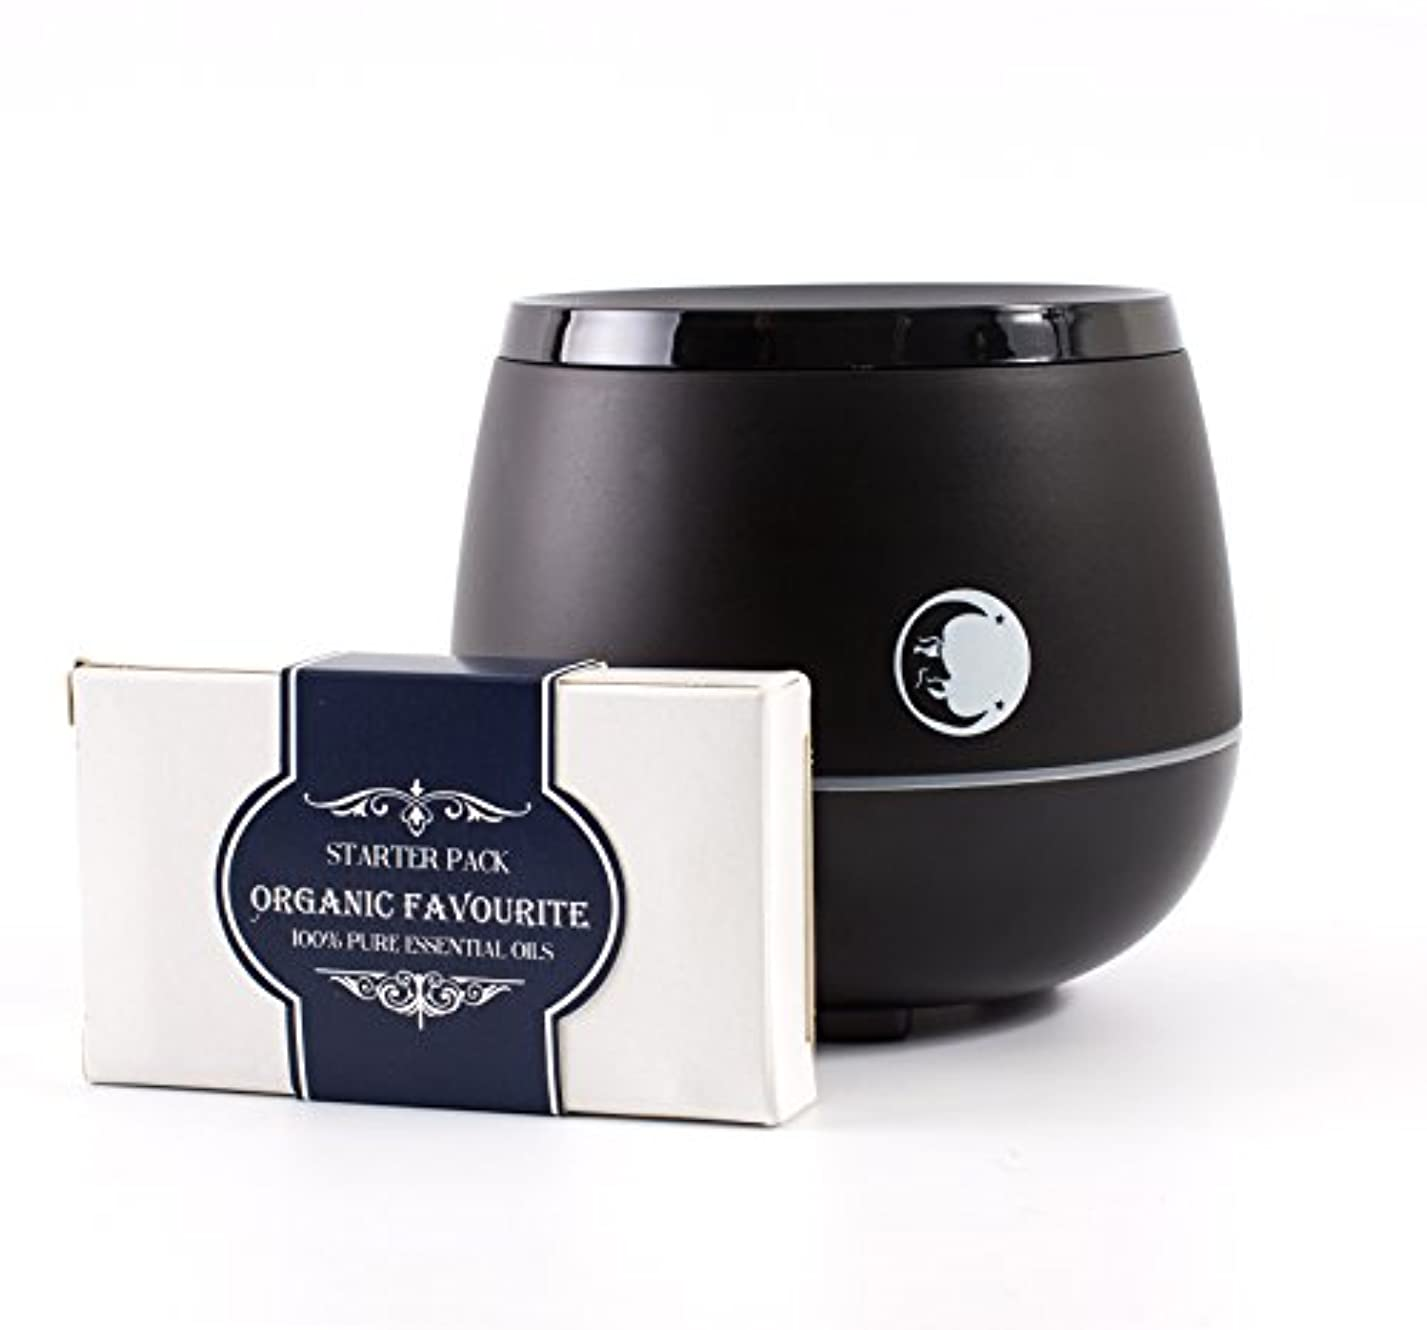 床を掃除する基礎理論実行Mystic Moments | Black Aromatherapy Oil Ultrasonic Diffuser With Bluetooth Speaker & LED Lights + Organic Favourite...